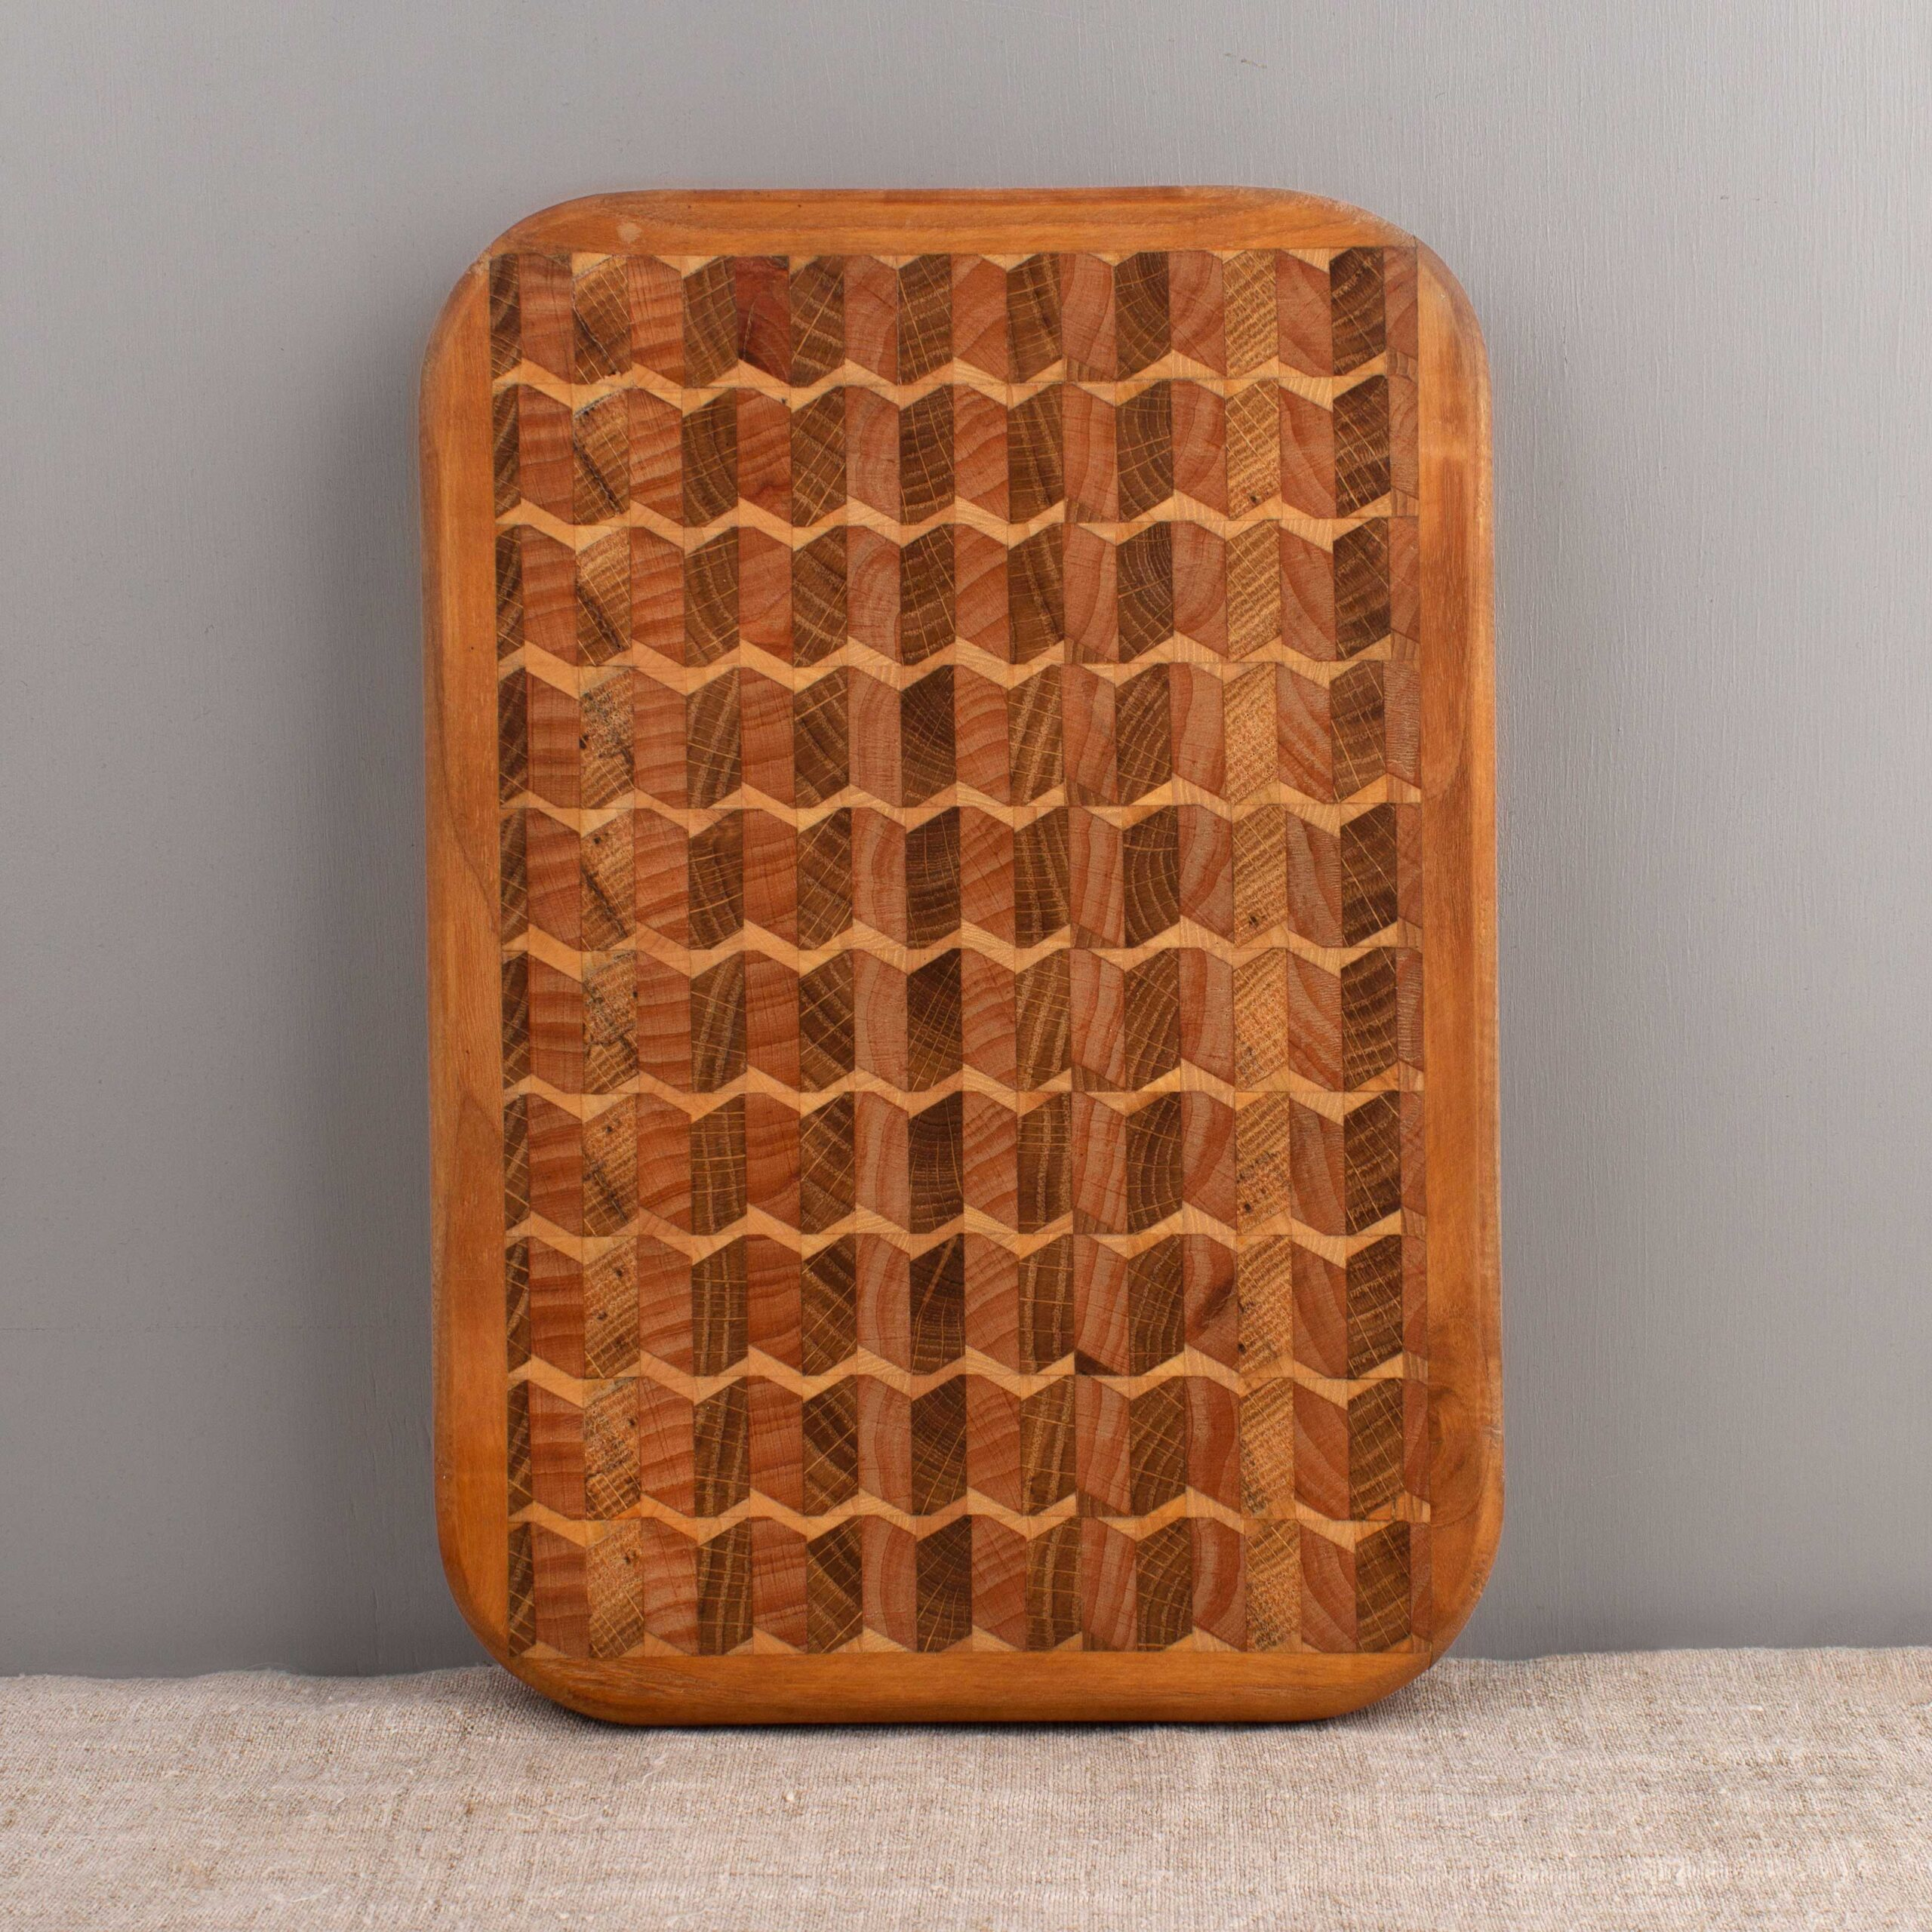 Wooden chopping board with handles